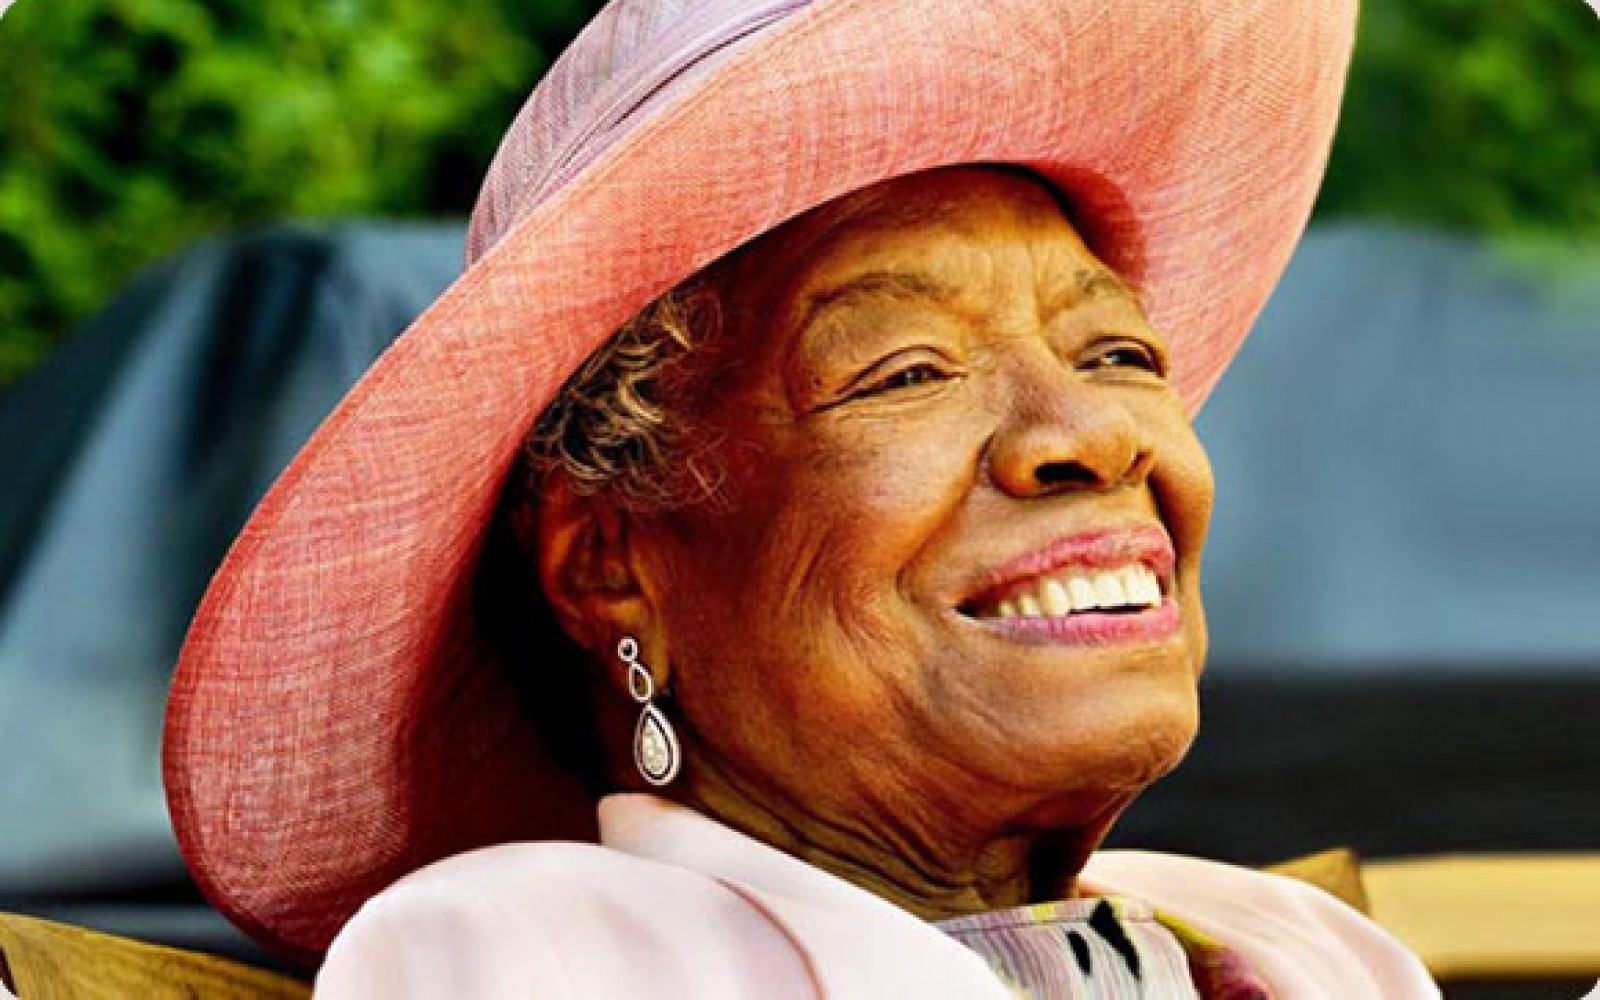 a angelou on emaze